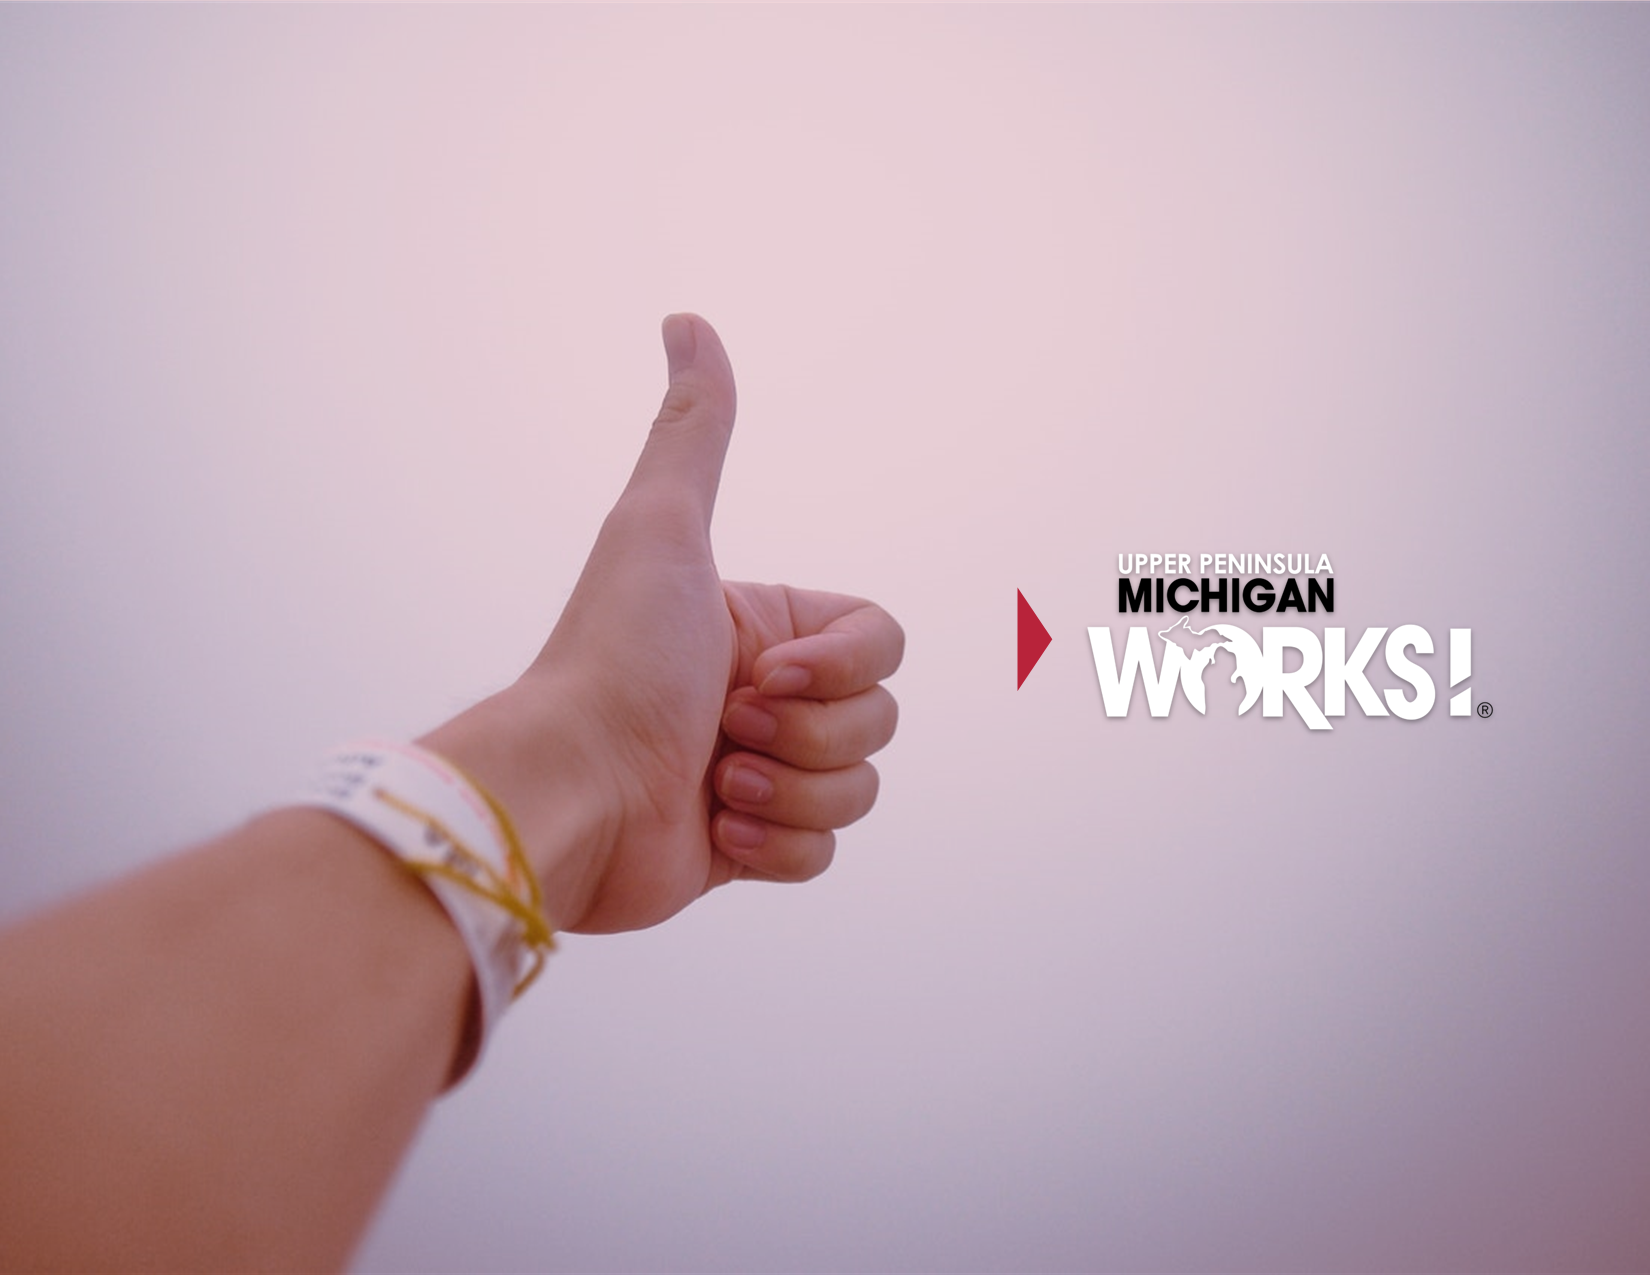 A person gives a thumbs up with the UP Michigan Works logo overlayed.